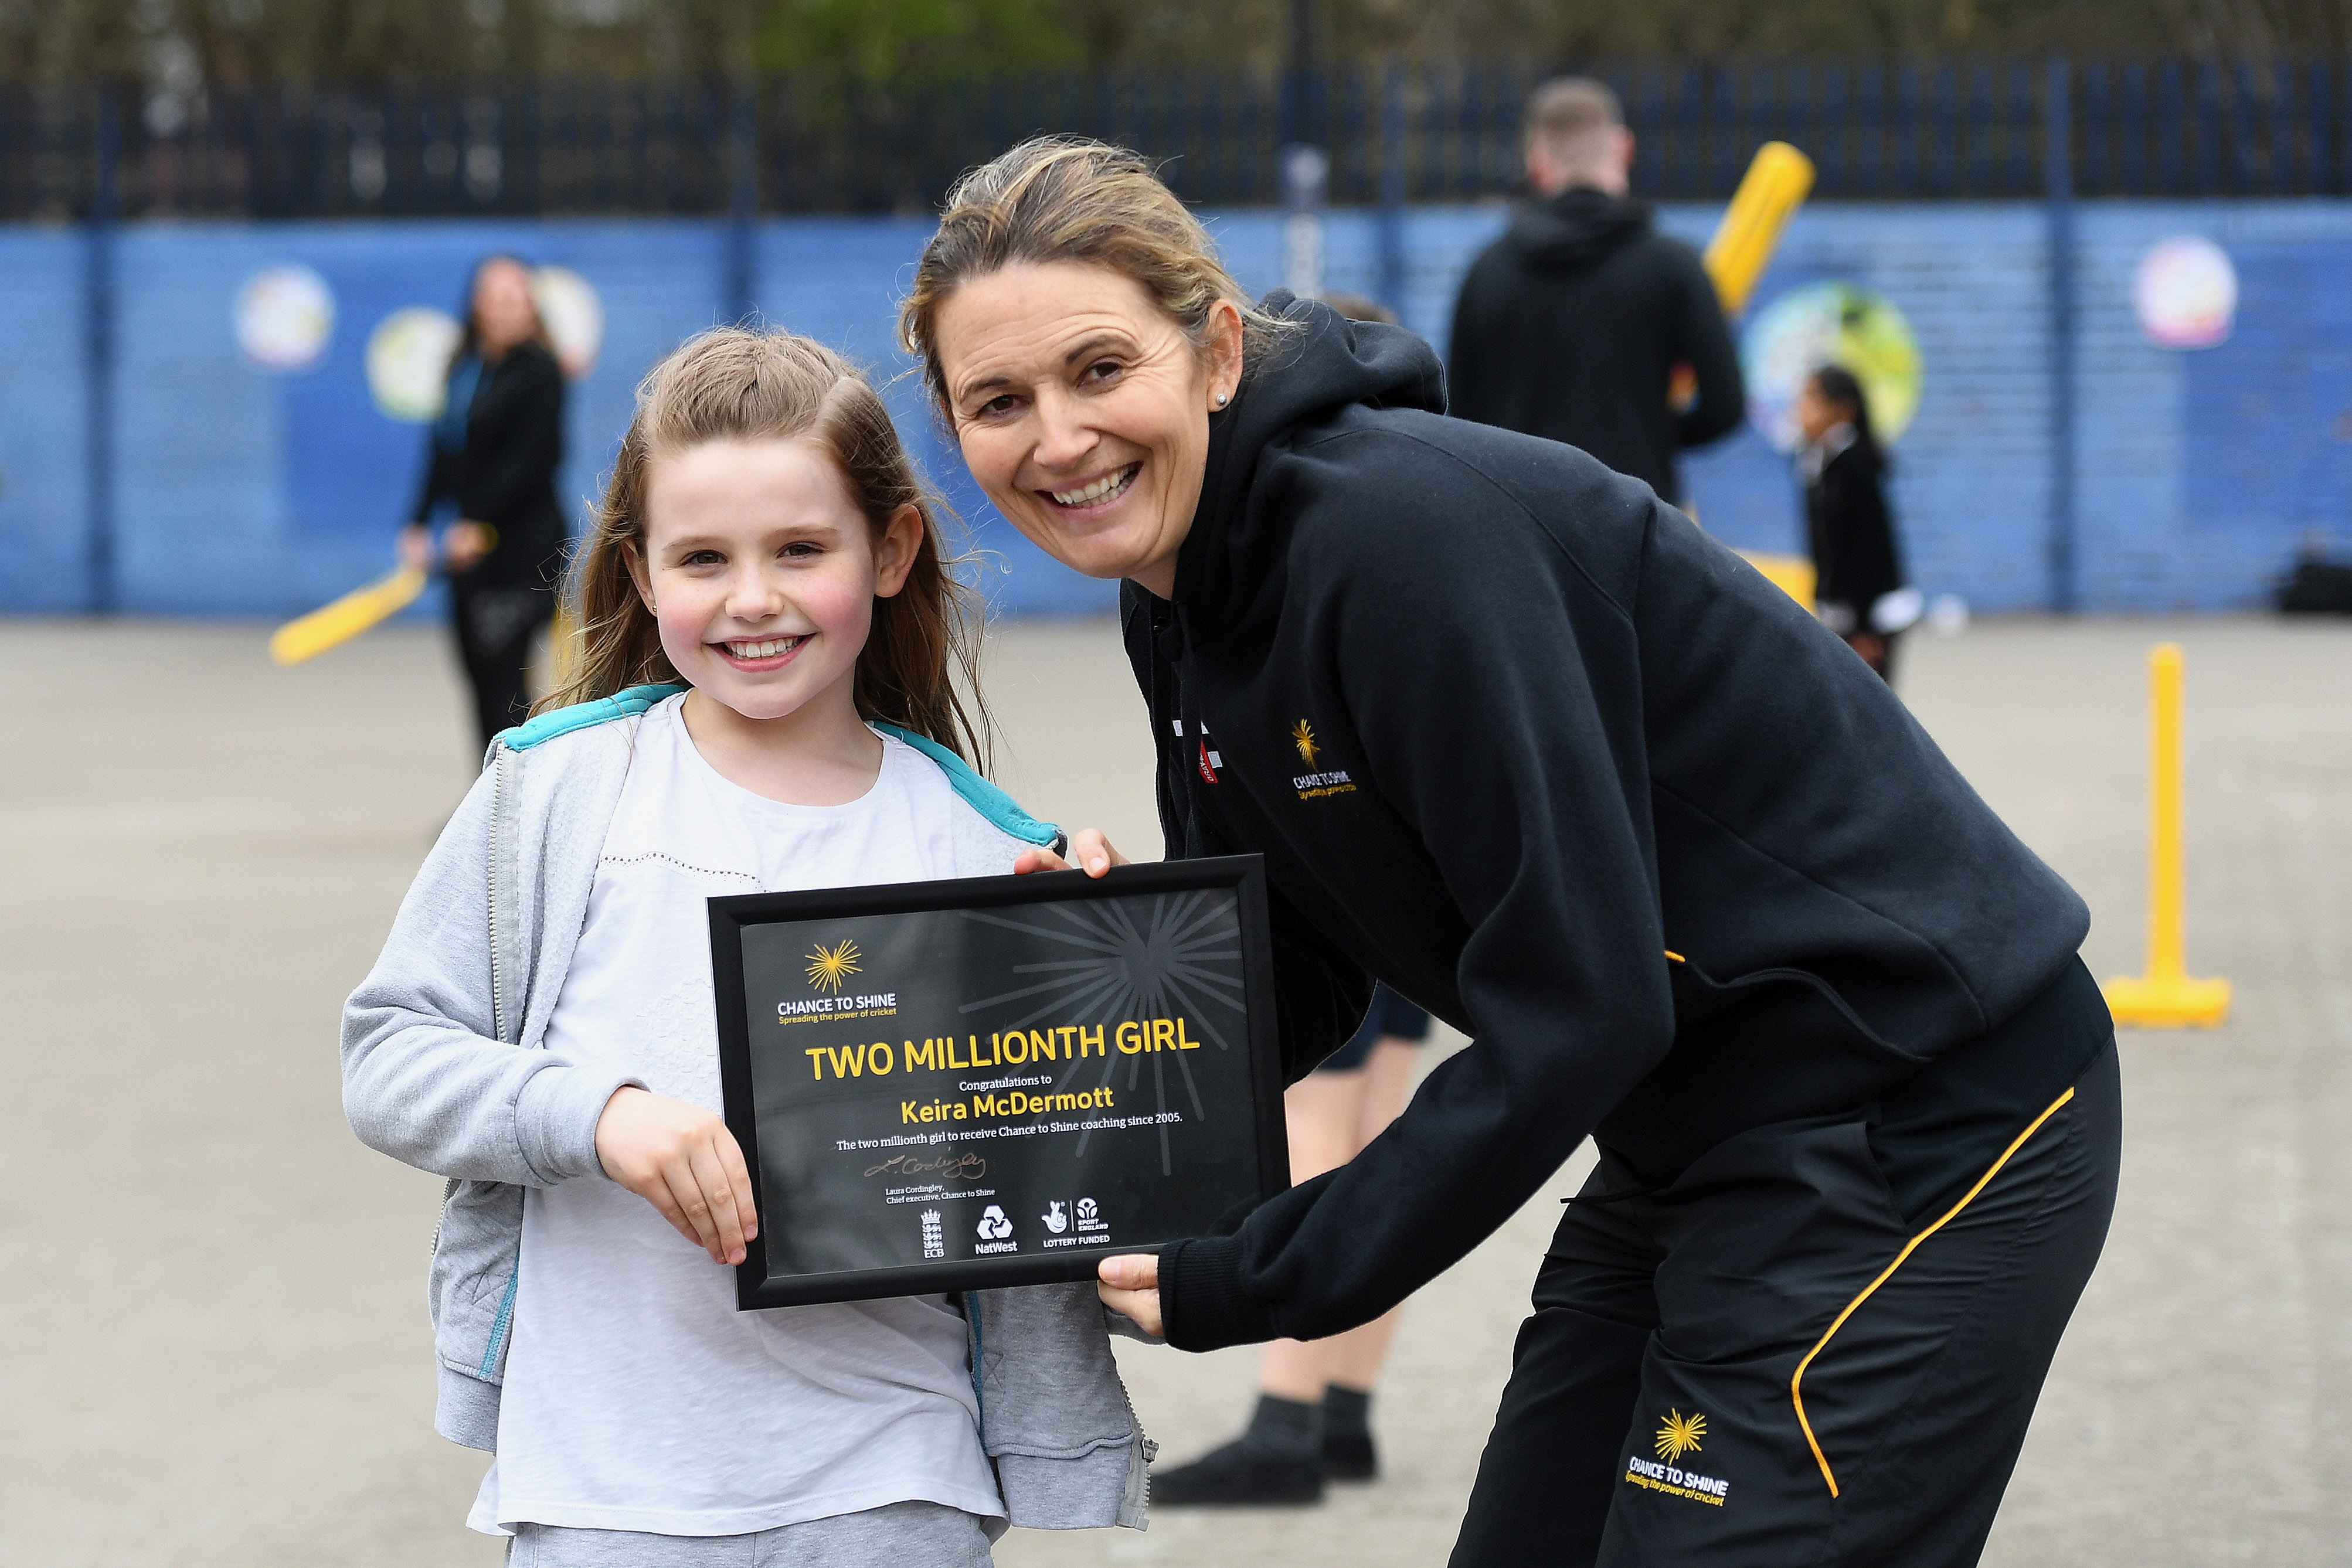 Staffordshire pupil becomes two millionth girl to play cricket, on International Women's Day 2019